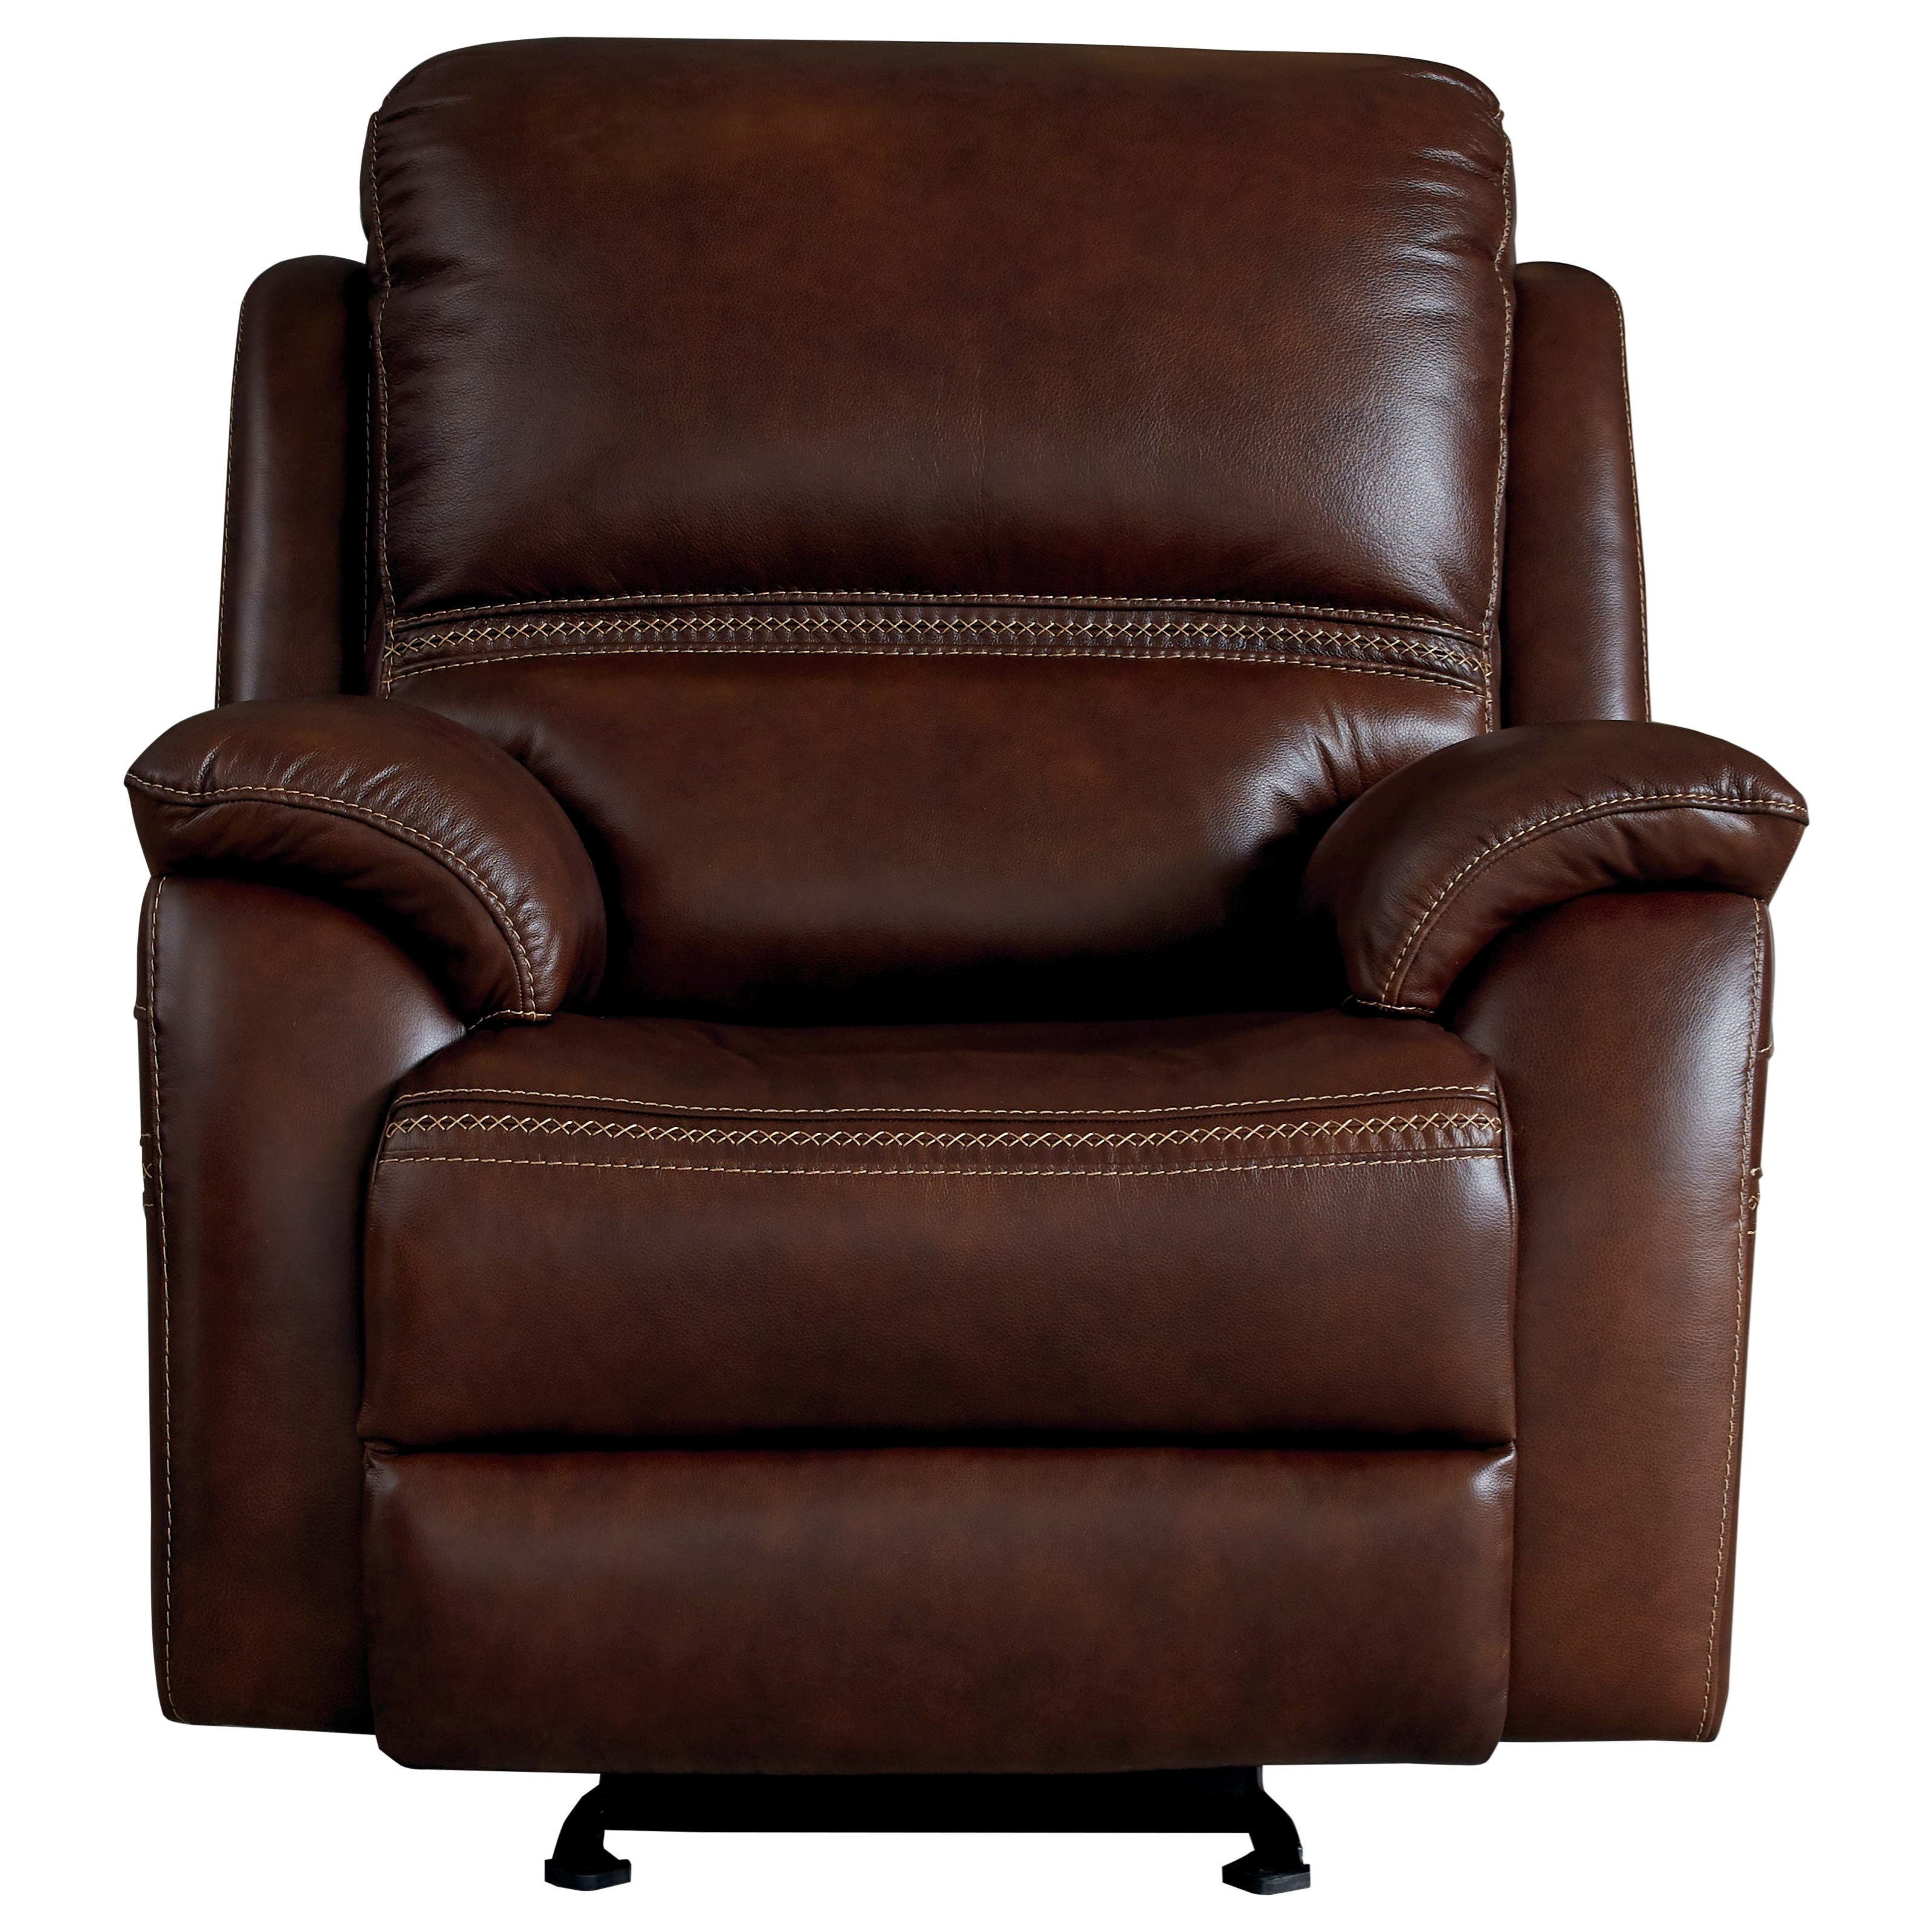 Williams - Club Level by Bassett Power Glider Recliner by Bassett at Johnny Janosik